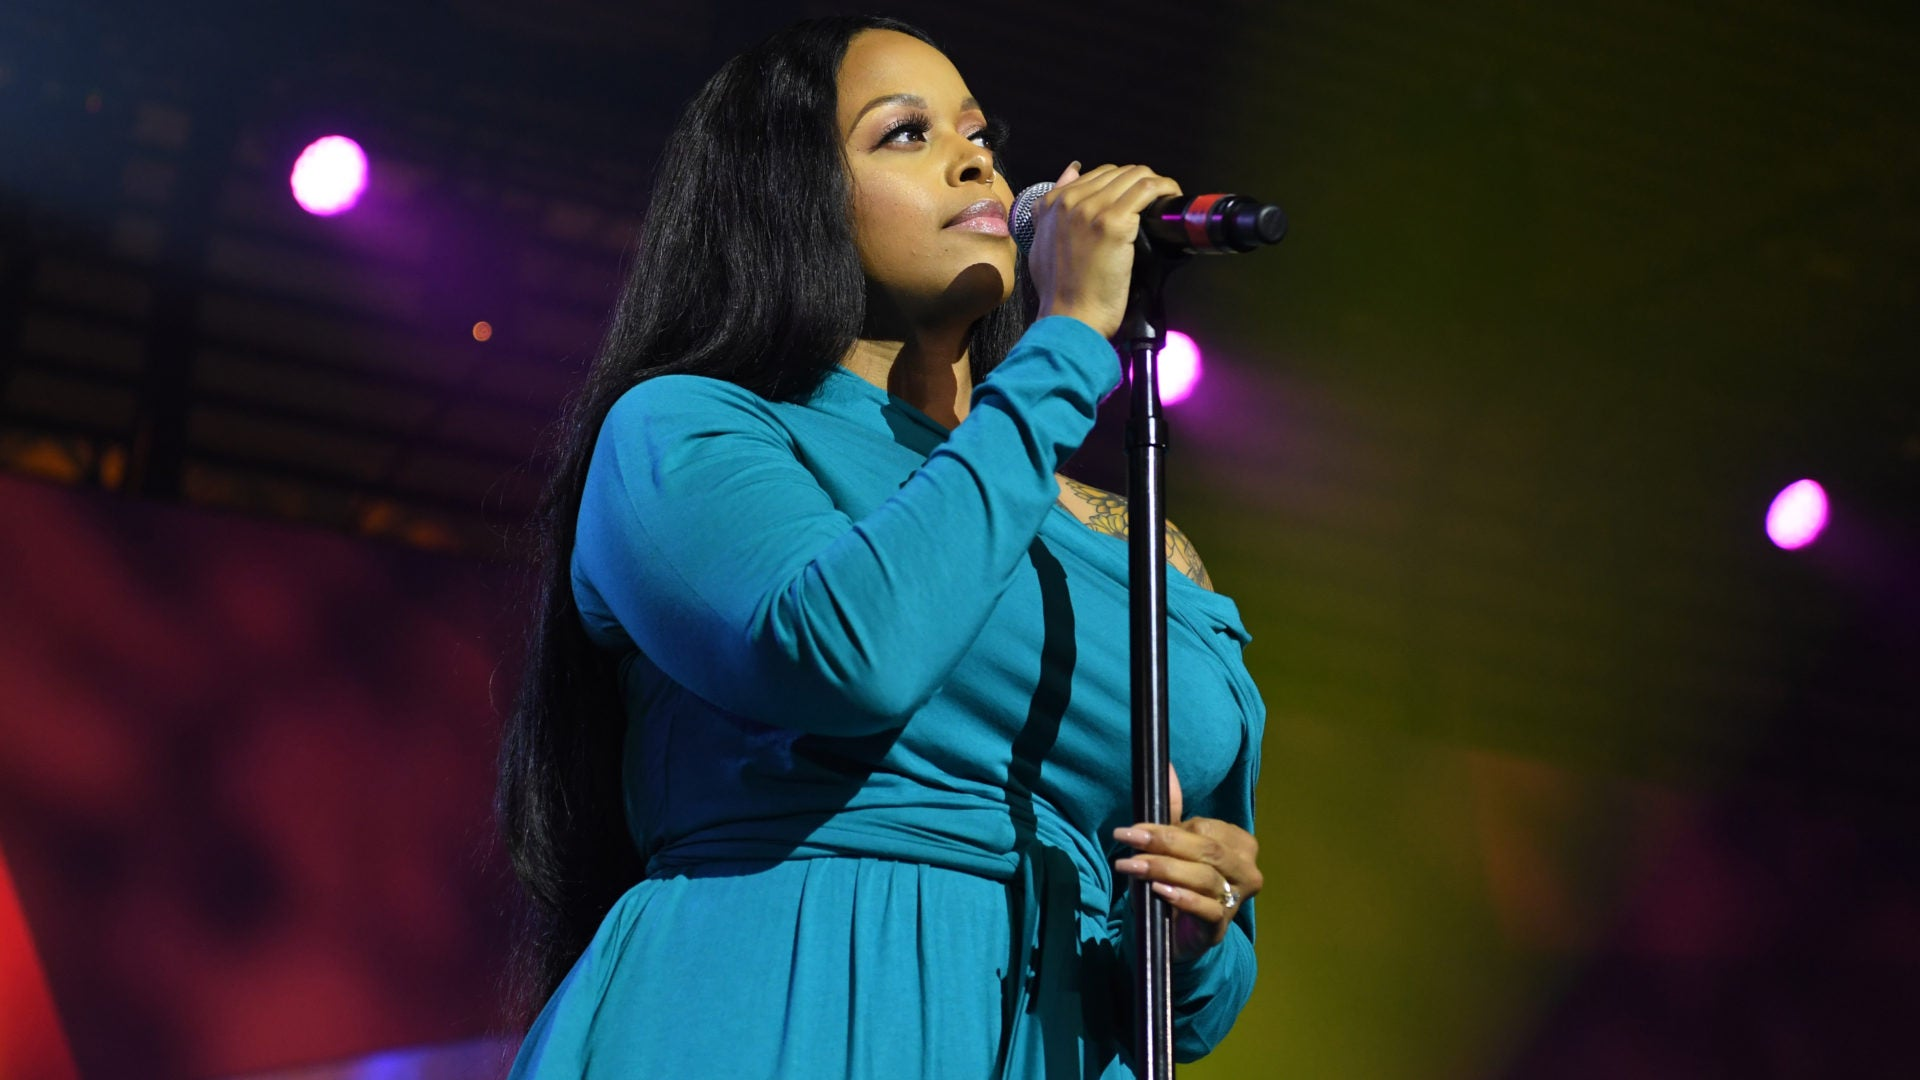 Chrisette Michele Opens Up About Miscarriage and Label Drop After Trump Inauguration